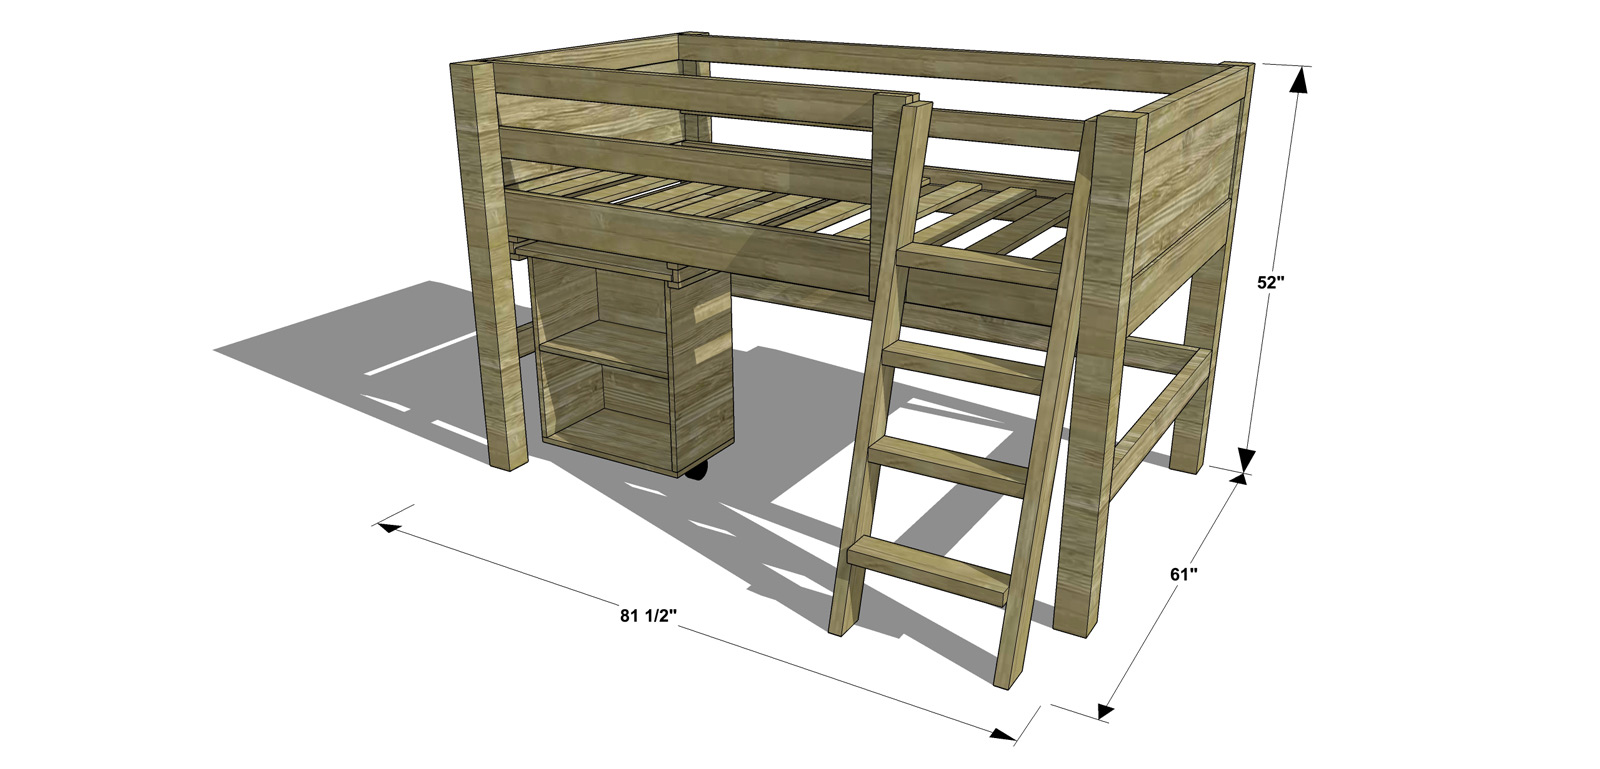 Stunning Dimensions for The Design Confidential Free DIY Furniture Plans How to Build a Twin